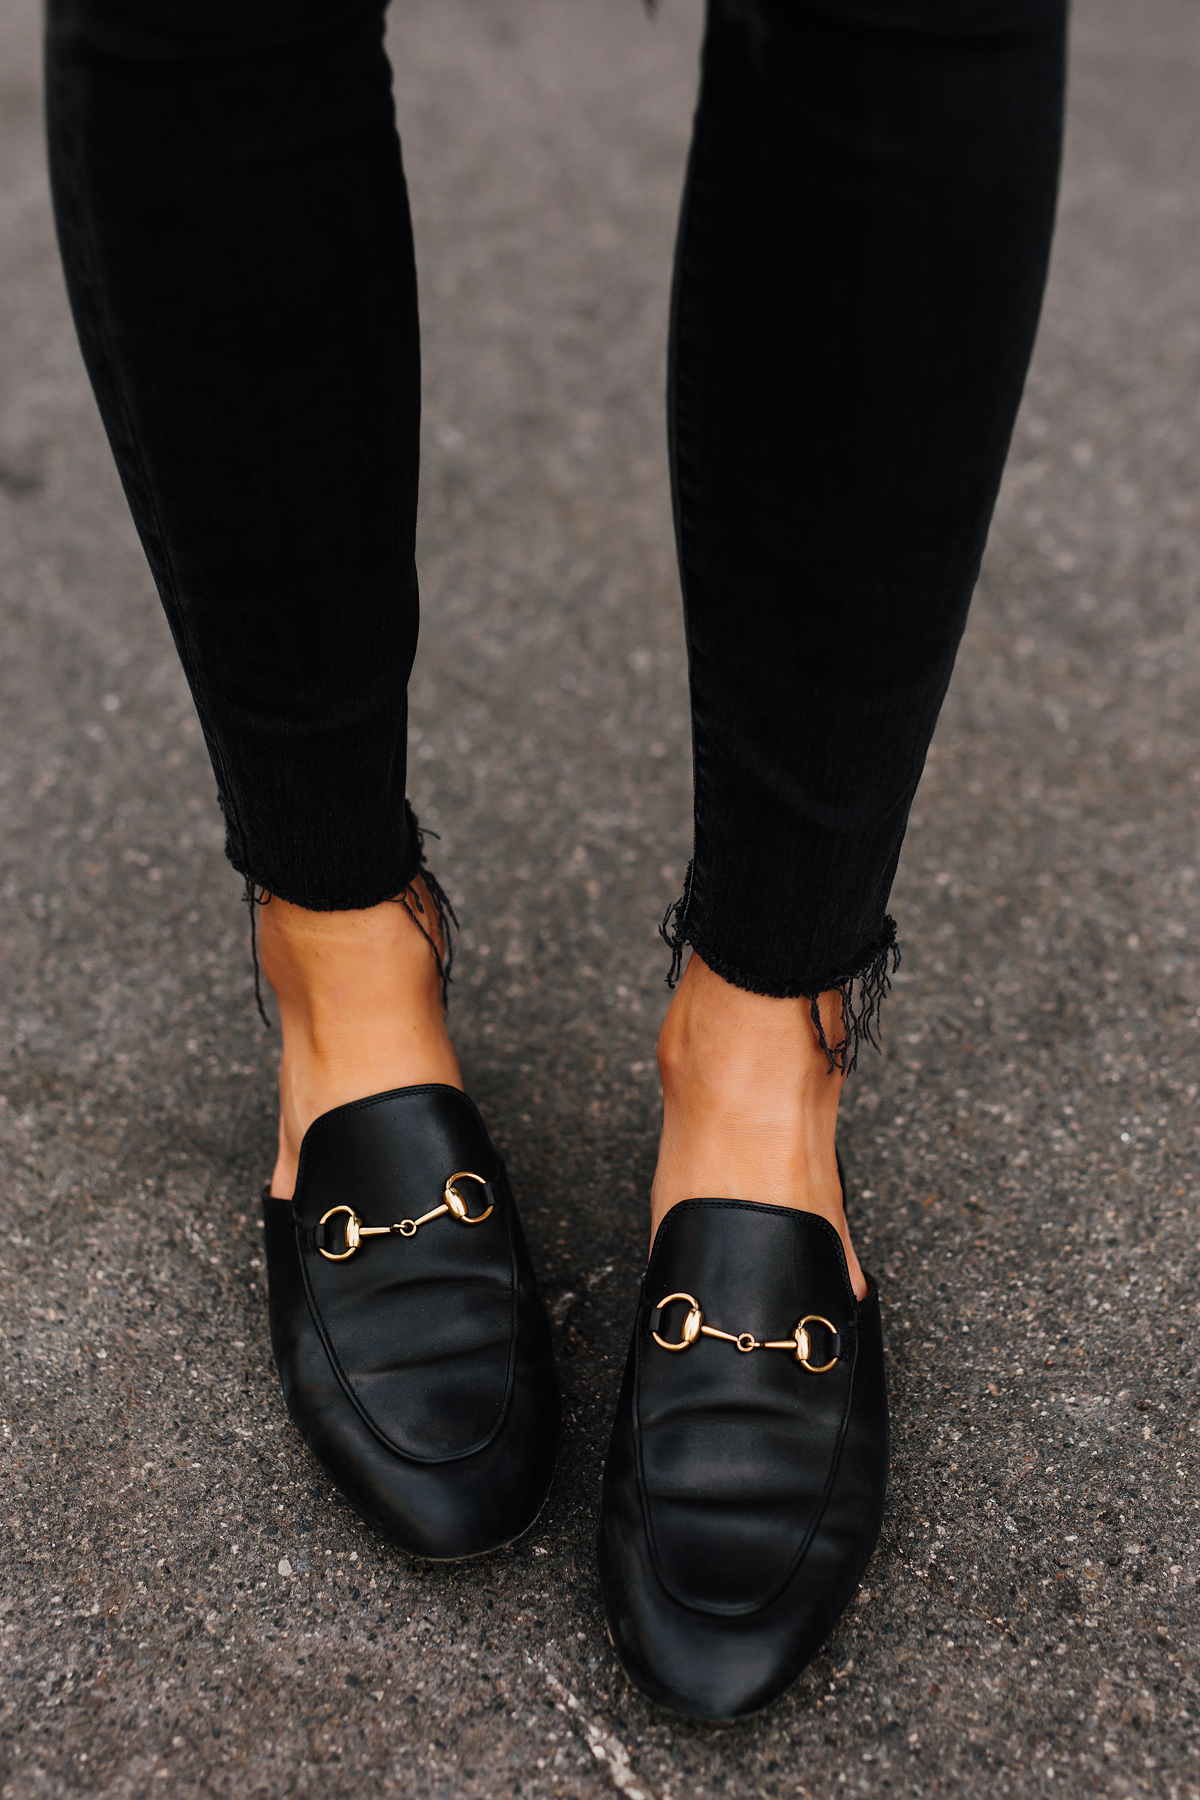 Woman Wearing Gucci Black Princetown Loafer Mules Black Ripped Skinny Jeans Fashion Jackson San Diego Fashion Blogger Street Style